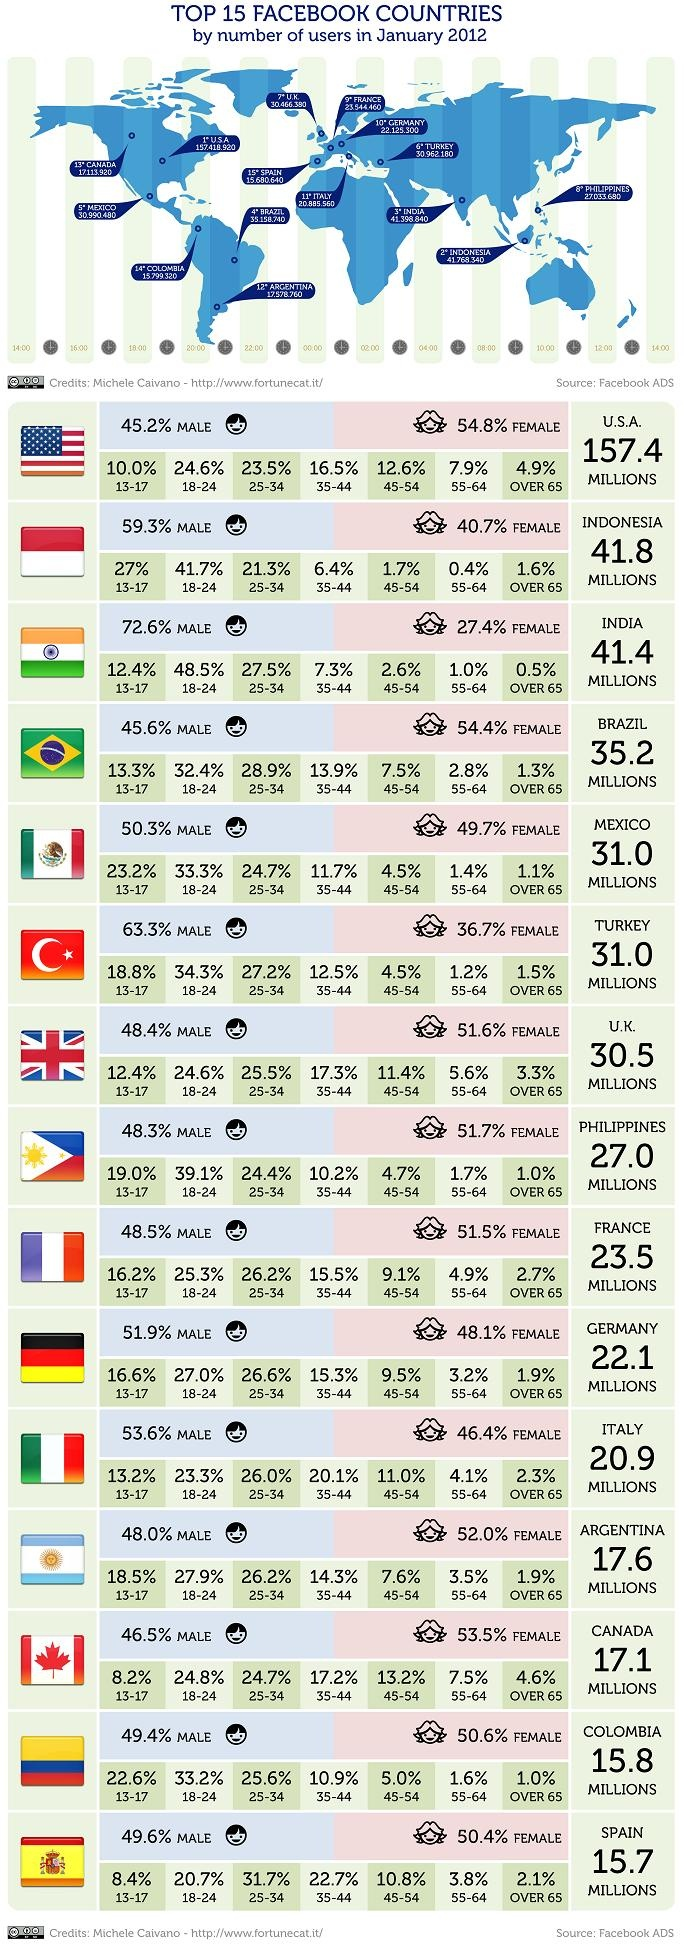 Top 15 Facebook Countries: By Number of Users in Jan 2012 [Infographic]